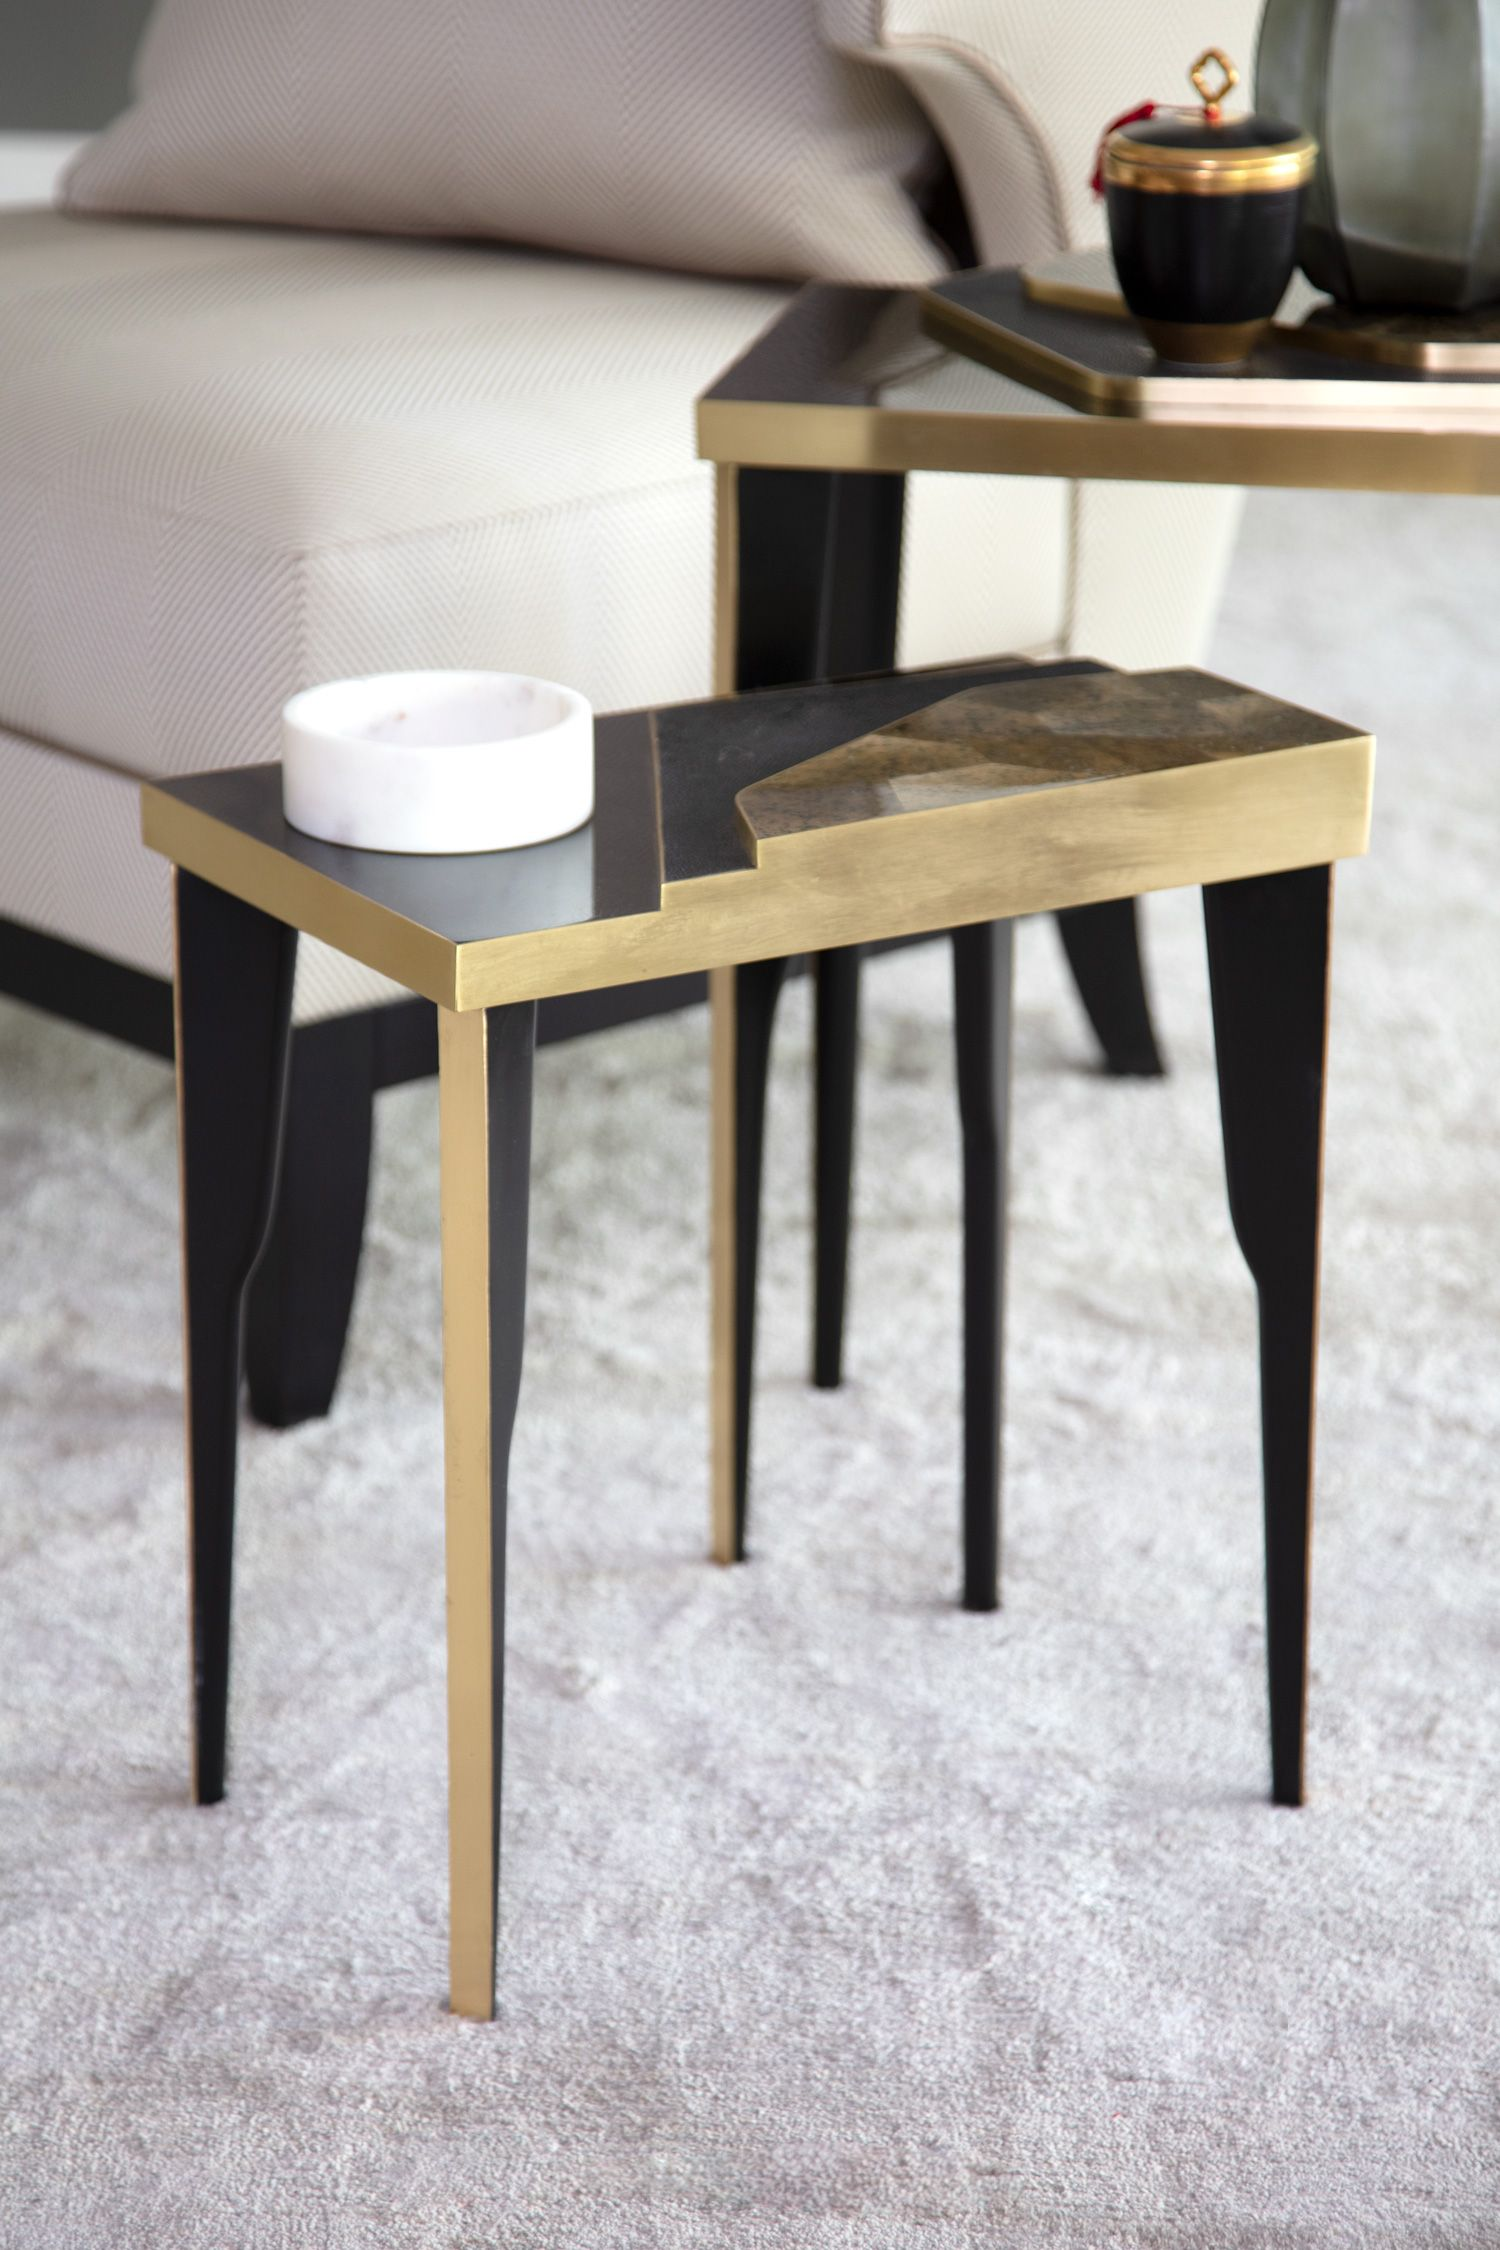 Incorporating Natural Materials Into A Beautiful Modern Design Our Astrid Luxury Side Tables Living Room Side Table Contemporary Side Tables Side Table Design